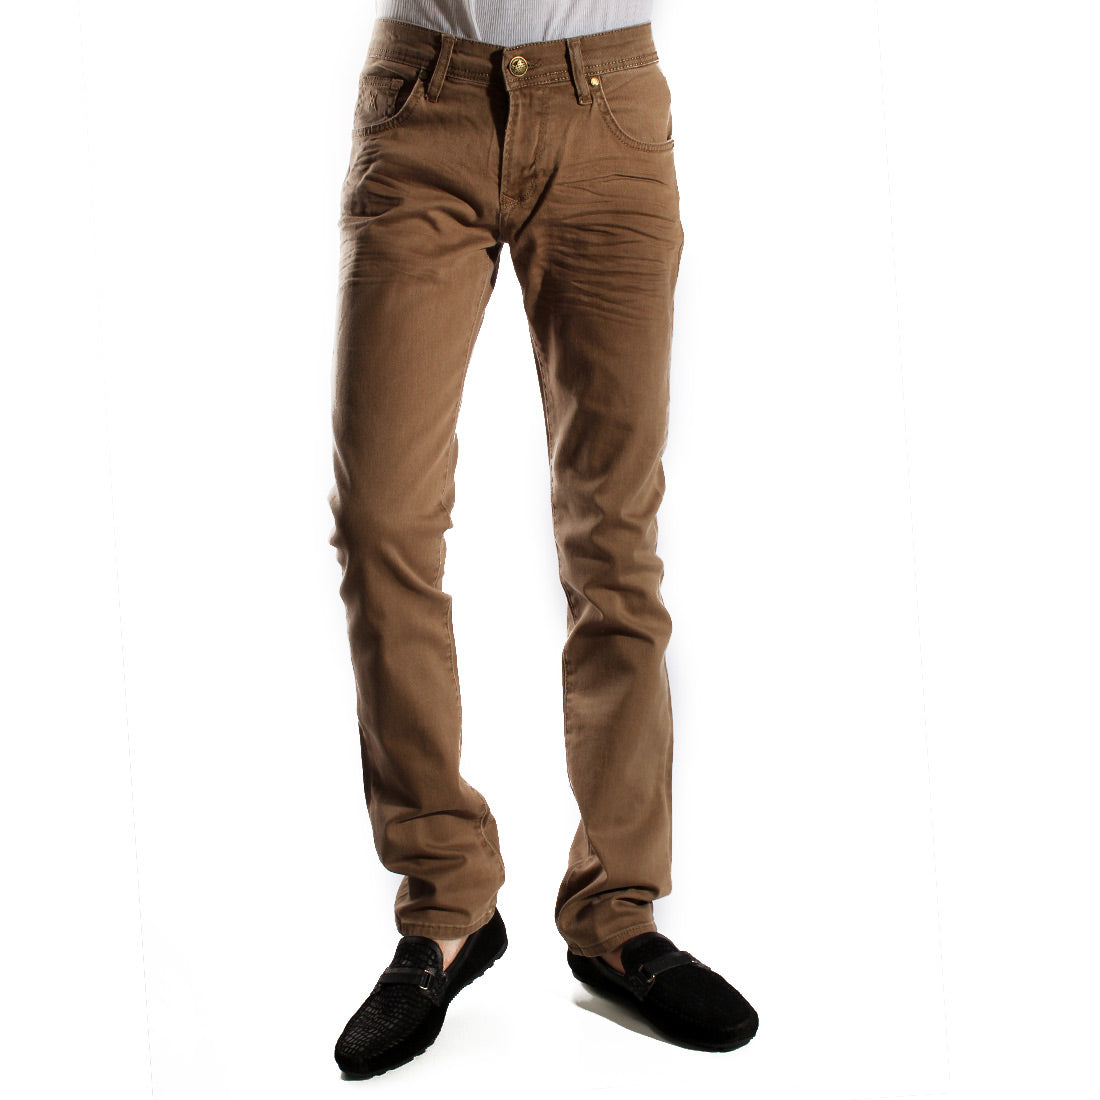 Denim khaki Pants/ made in turkey -3375